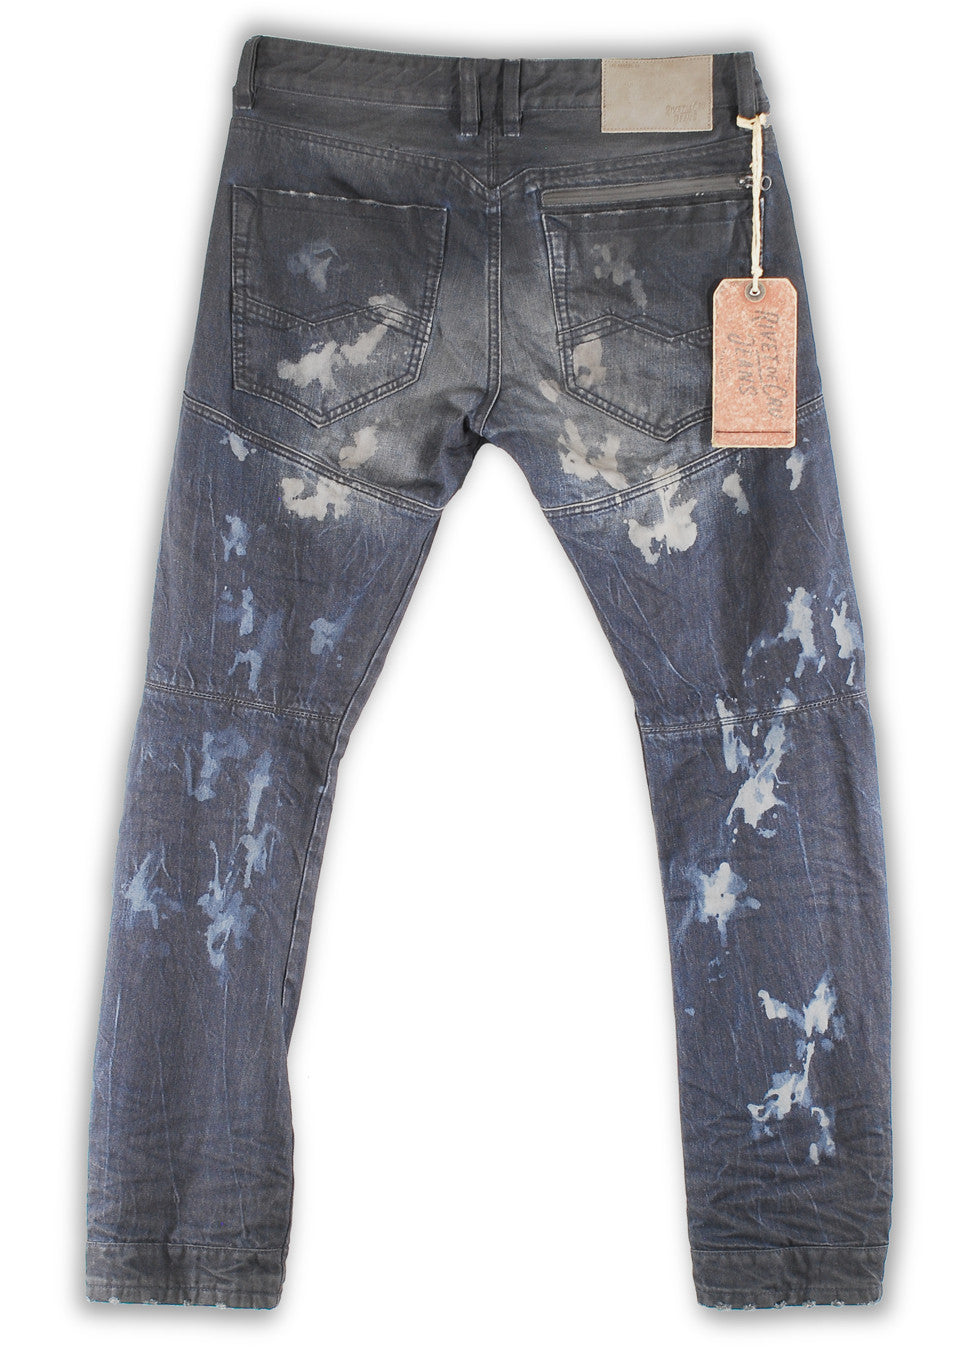 162-021F Raven Blue Wash Moto Fit Jean - Rivet De Cru Jeans - Premium Denim - Mens Fashion - Mens Clothing - Mens Jeans - Mens Denim - 2